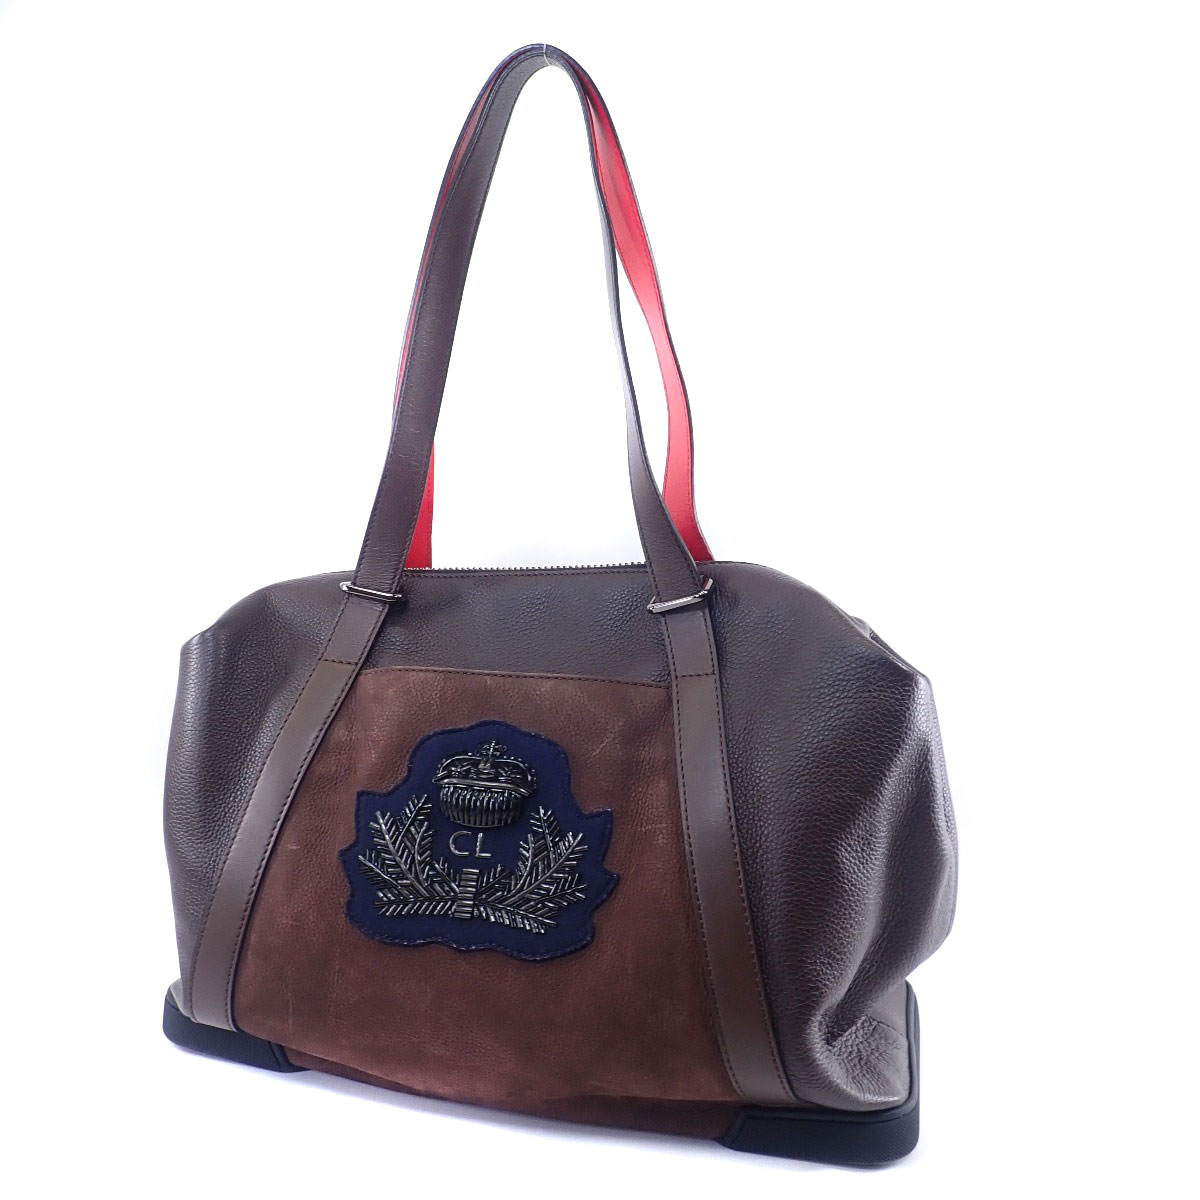 a5e0c8a86e3 Christian Louboutin 【Christian Louboutin】 Shoulder Bag Leather Women ー The  best place to buy Brand Bags Watches Jewelry, Brand Bargain